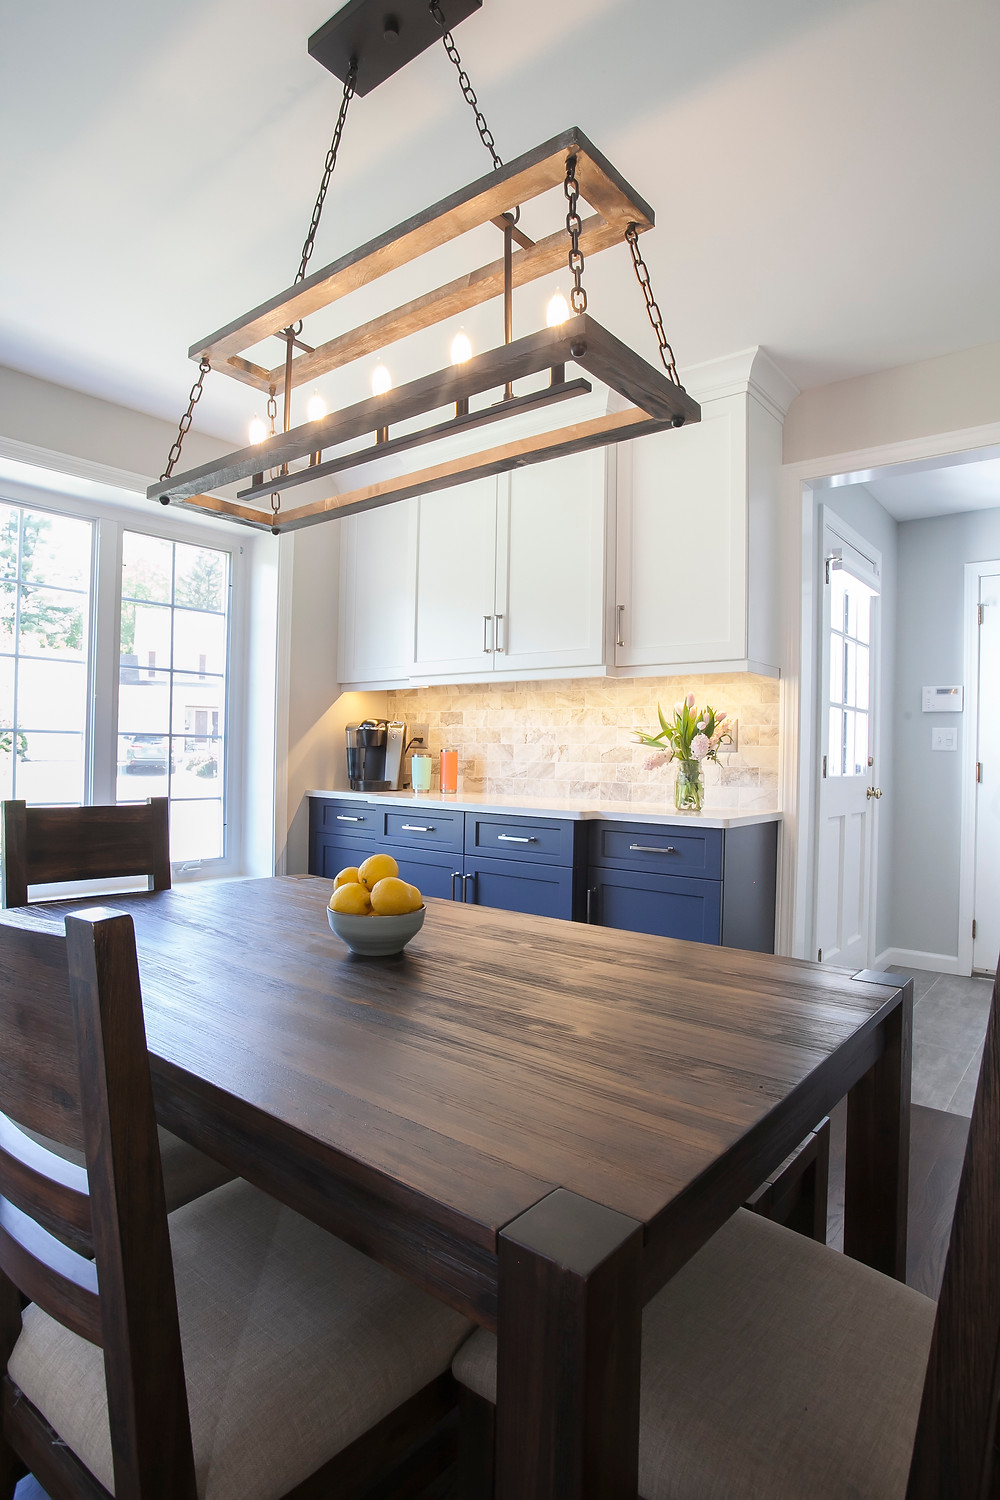 Dining room with contemporary rustic light fixture